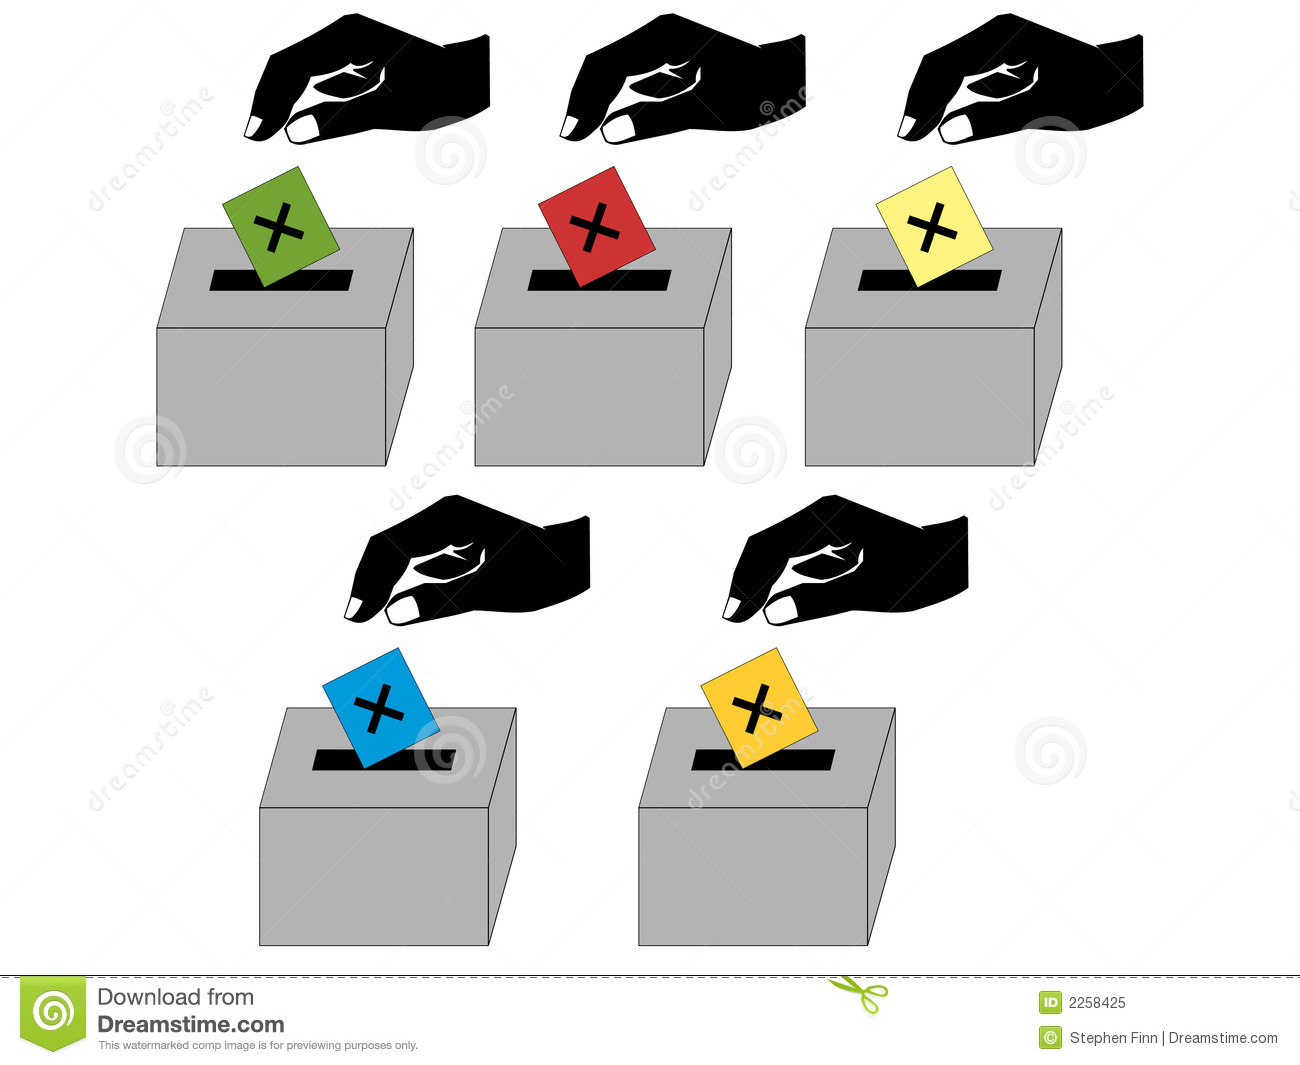 People Voting For British Political Parties Illustration